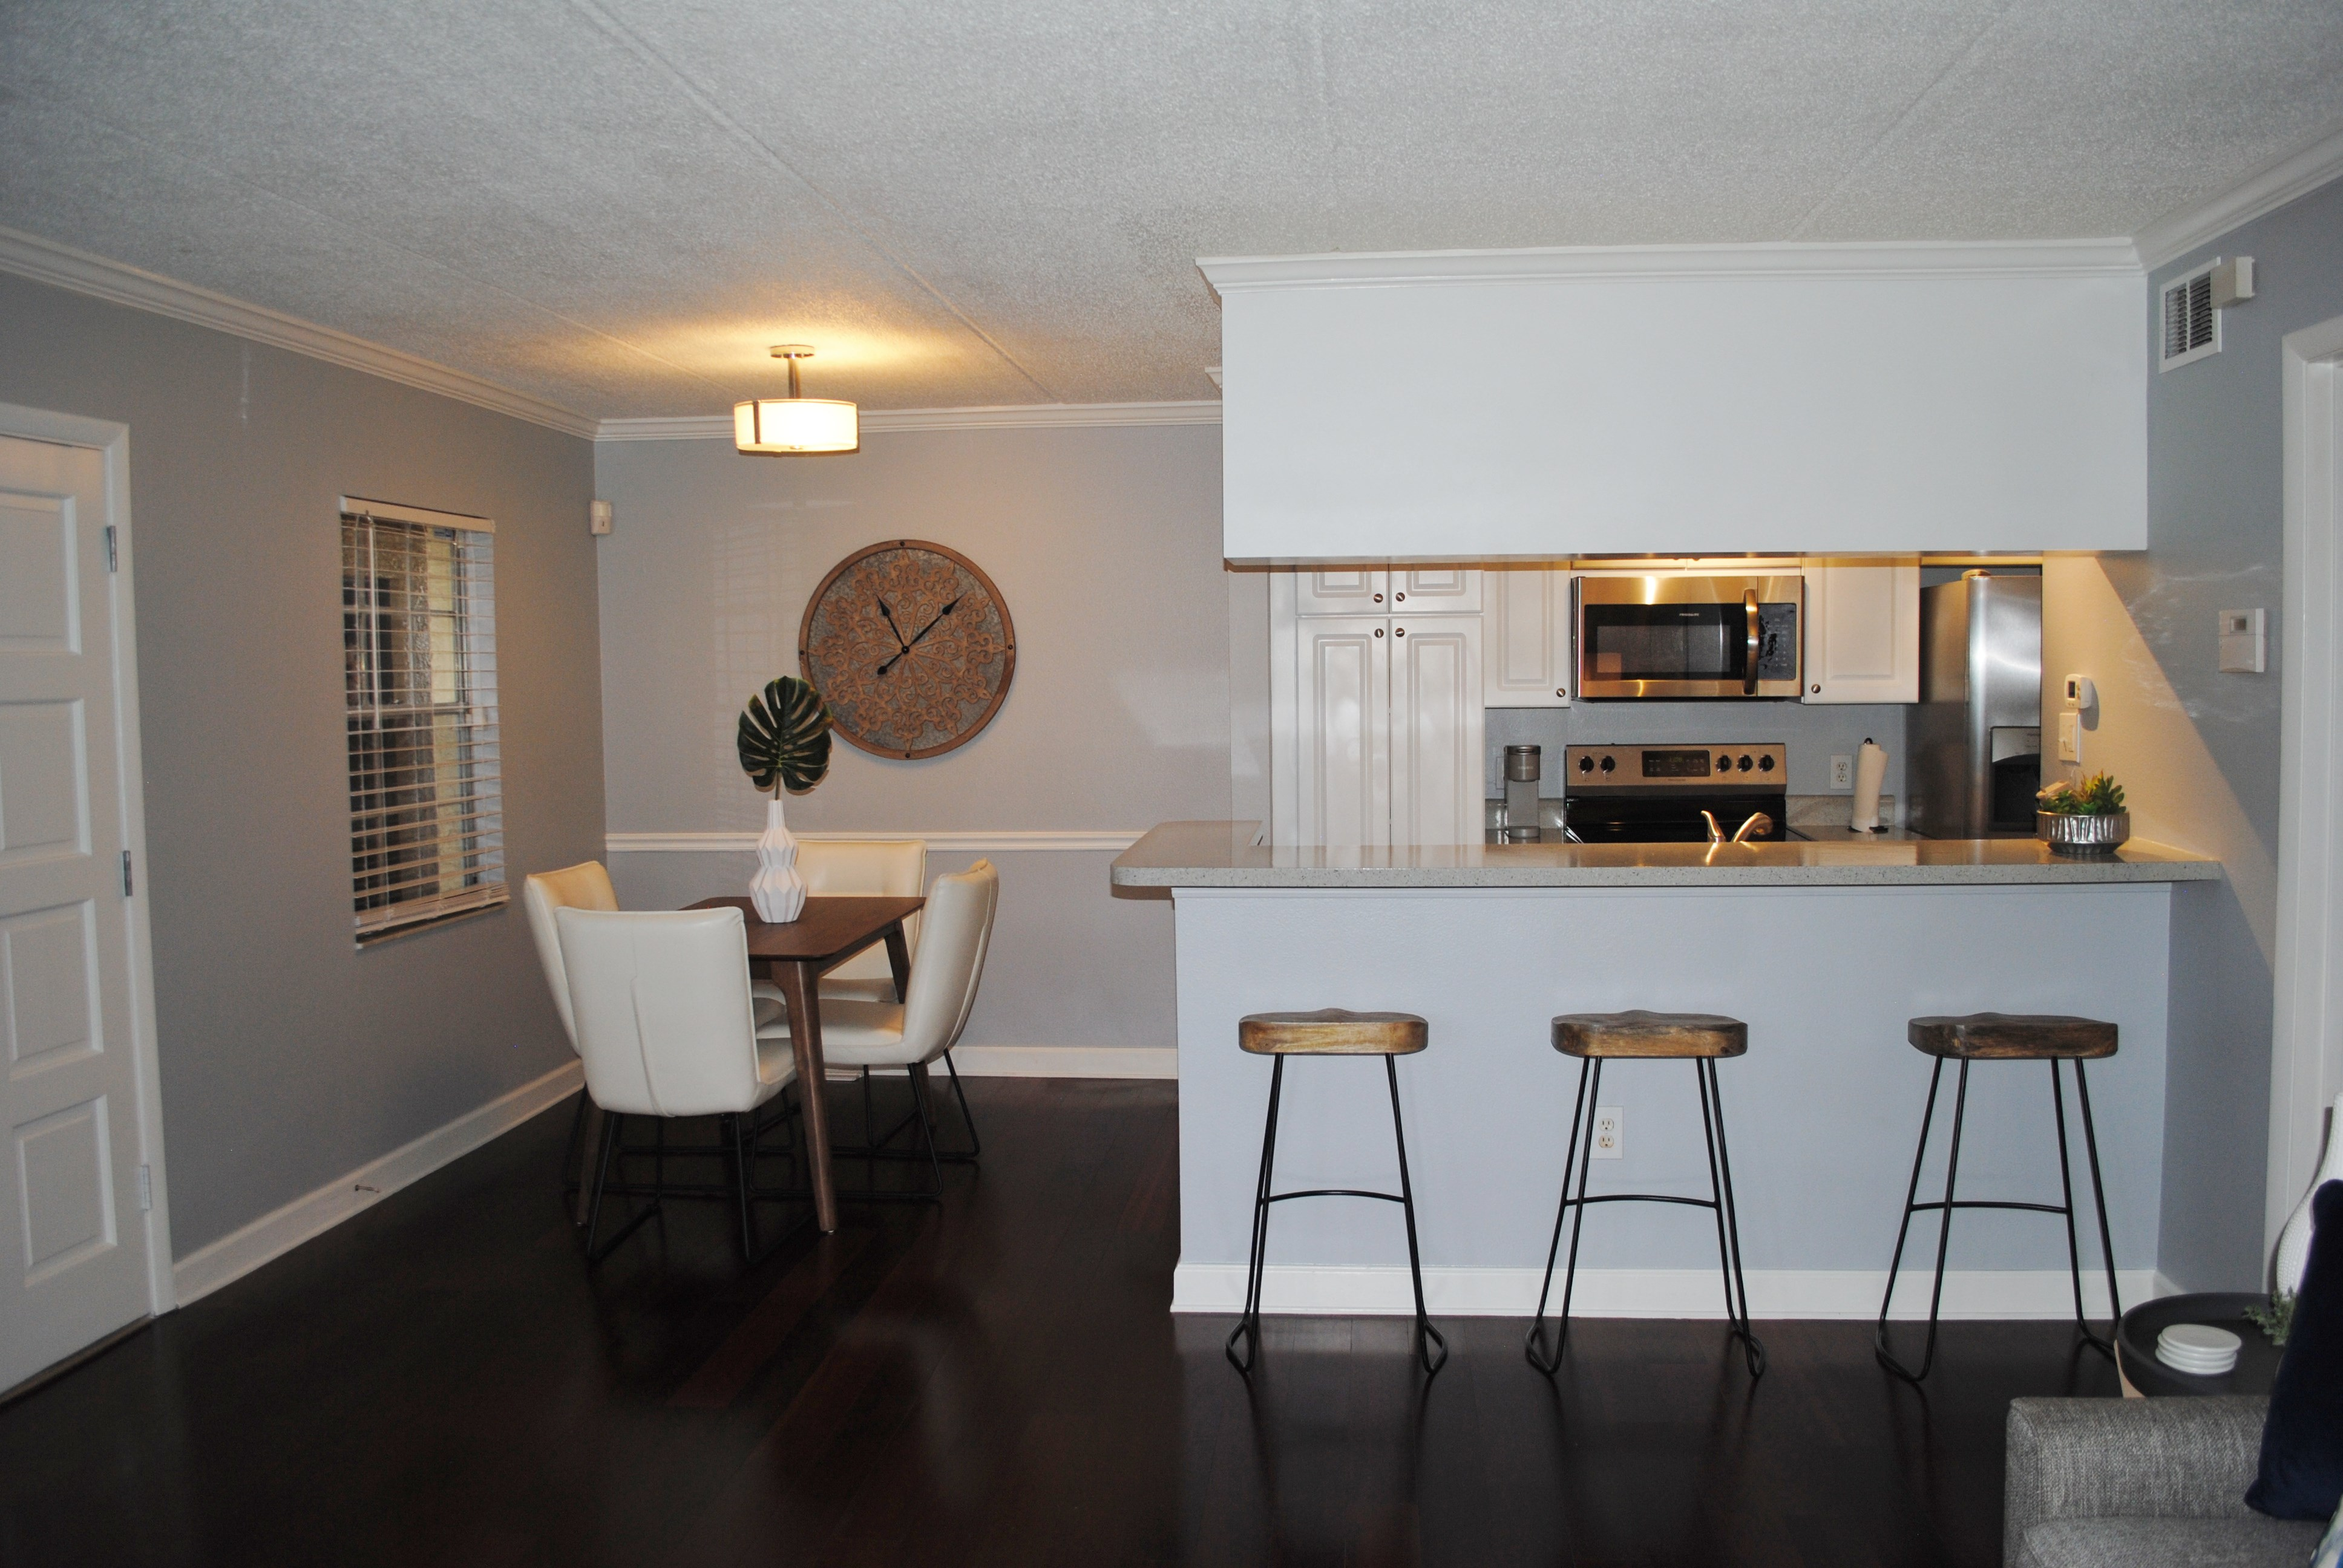 dinning-room-and-kitchen-2